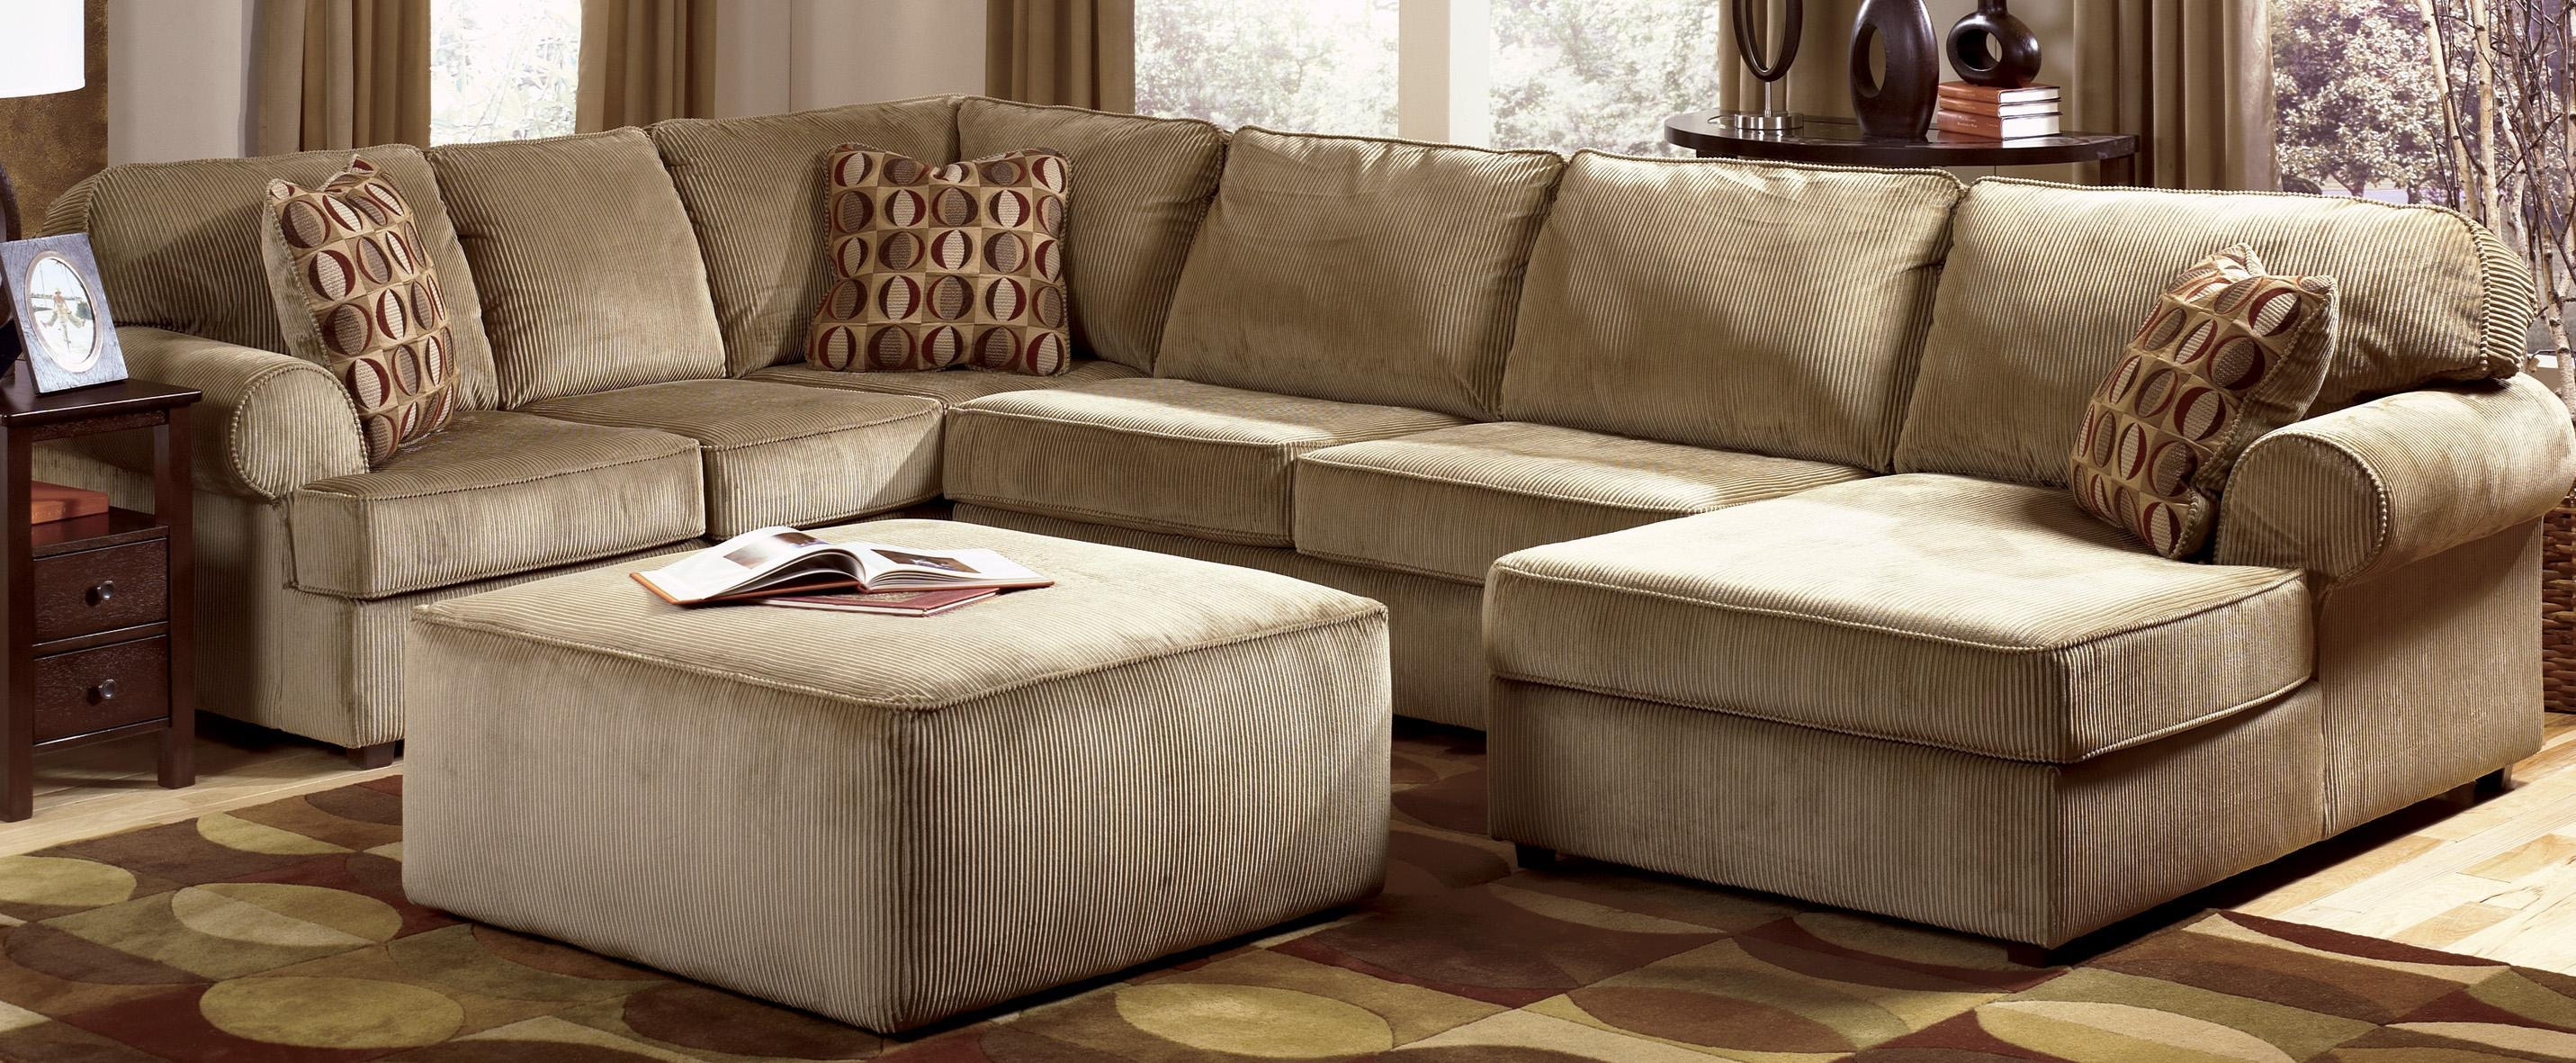 Living Room: Cheap Sofa Sectional | Affordable Sectional Sofas Regarding Sofas And Sectionals (Image 13 of 20)